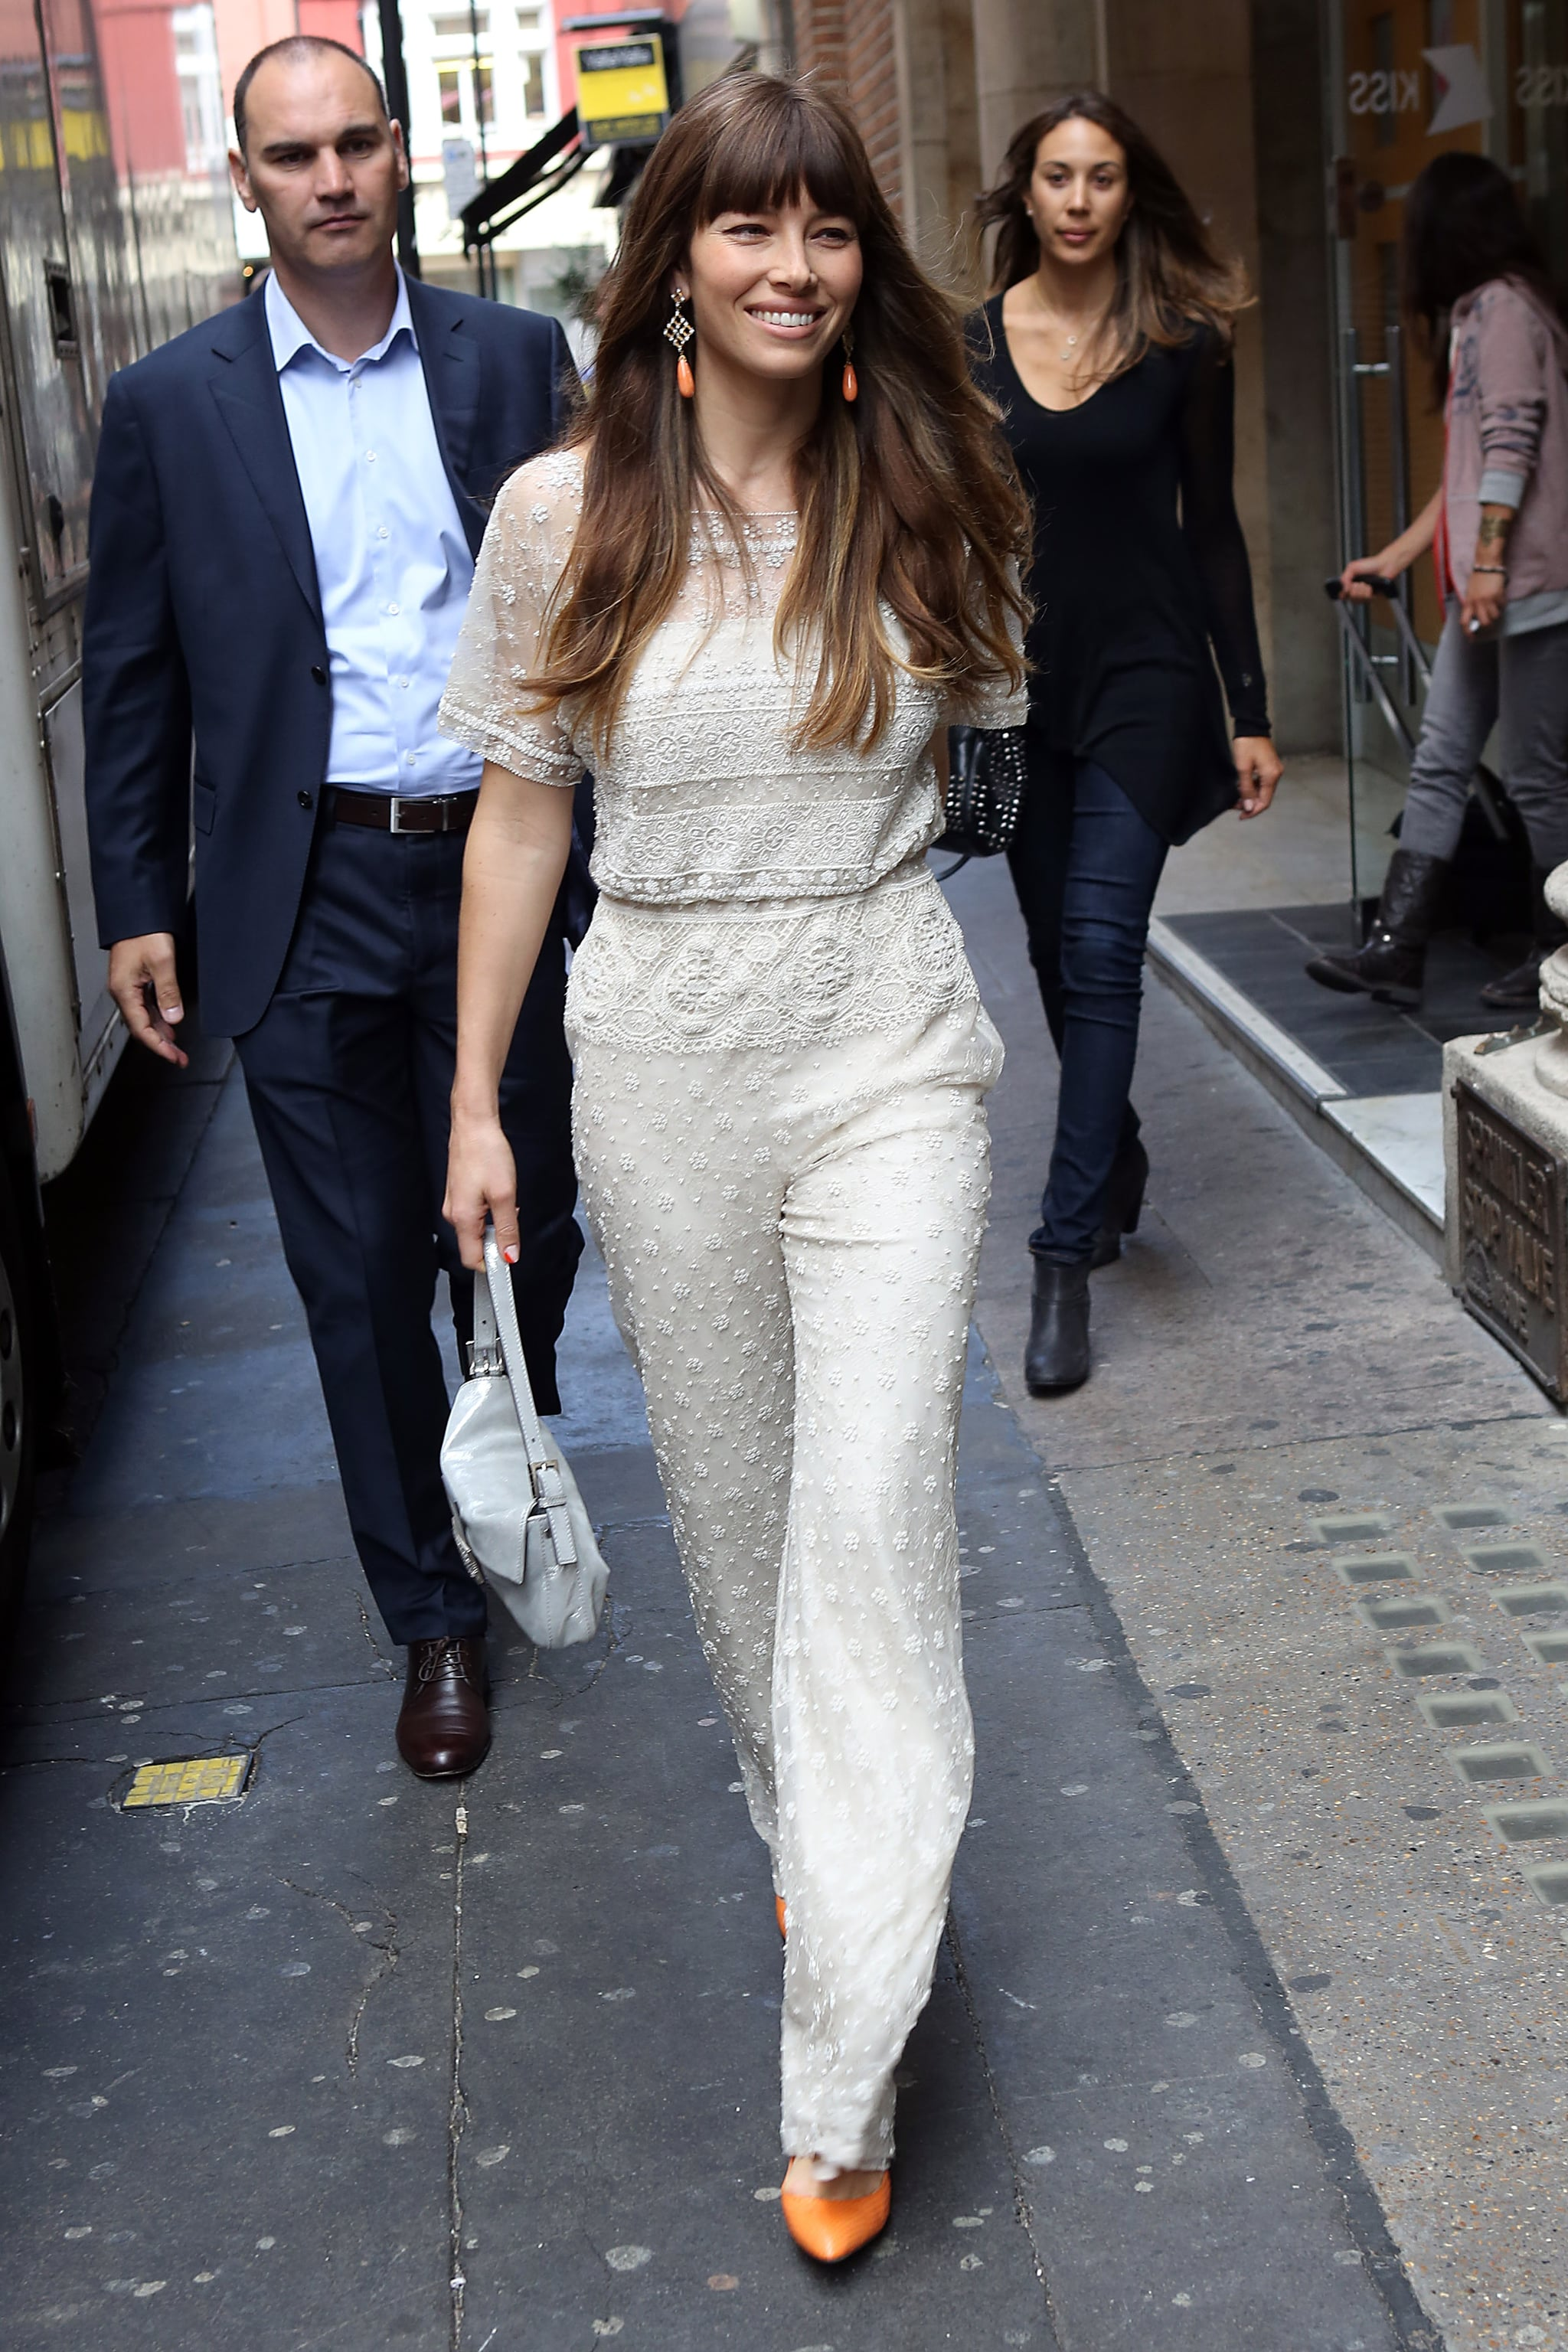 Jessica Biel looked happy to appear on Kiss FM radio in London.